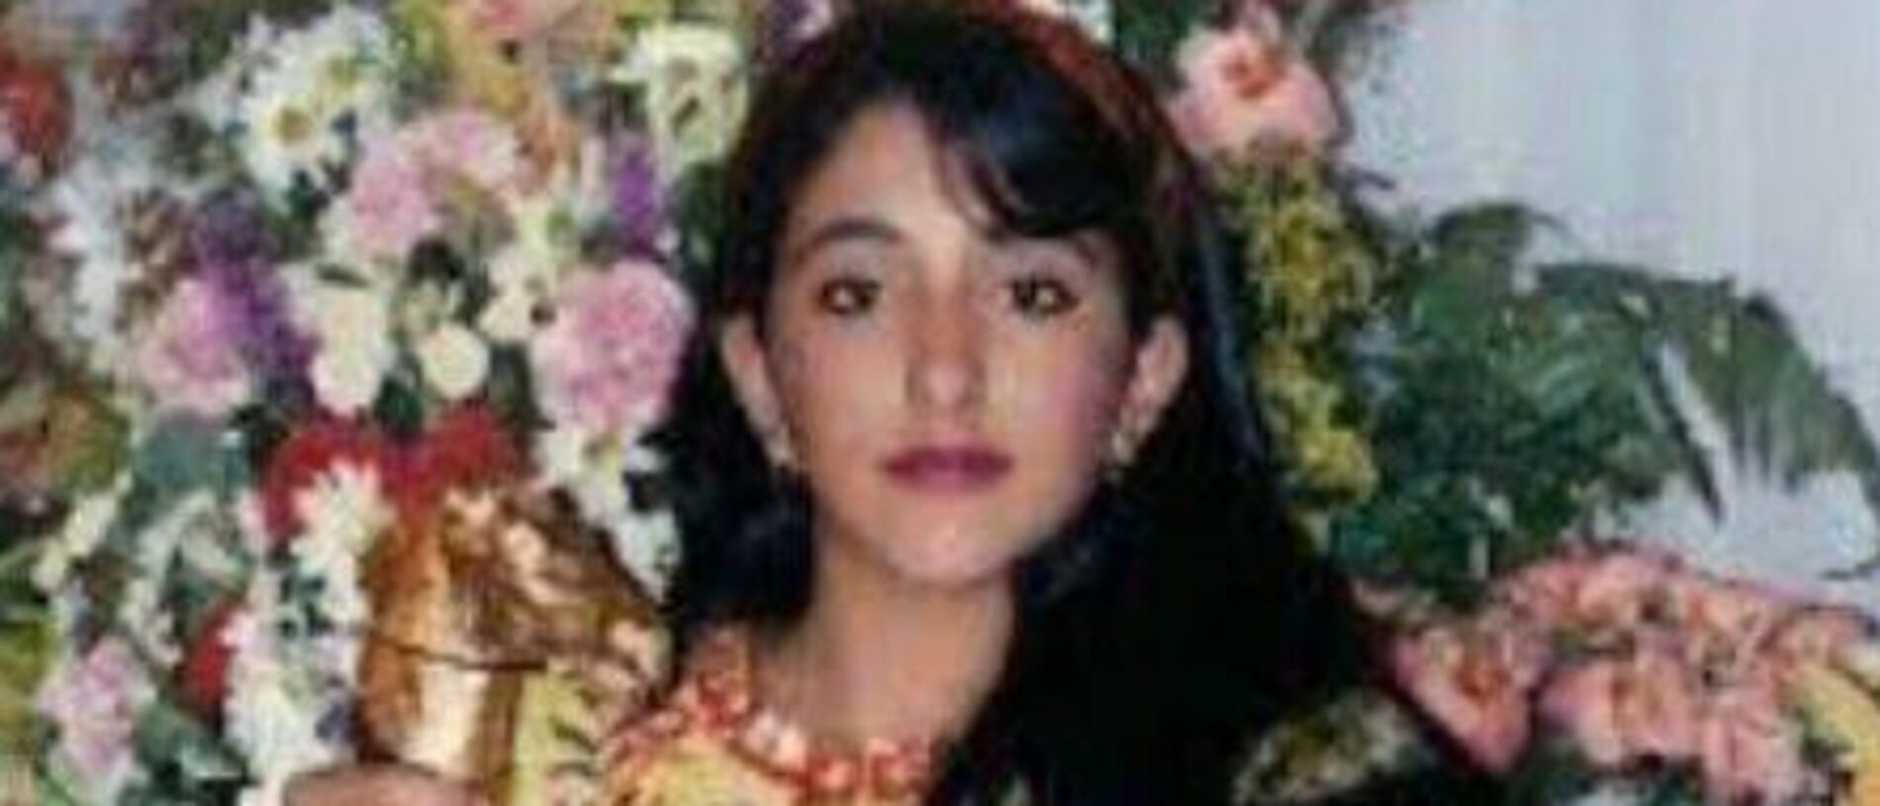 Shamsa tried to flee her family in 2000, but was subsequently kidnapped and returned to Dubai. Picture: Free Latifa